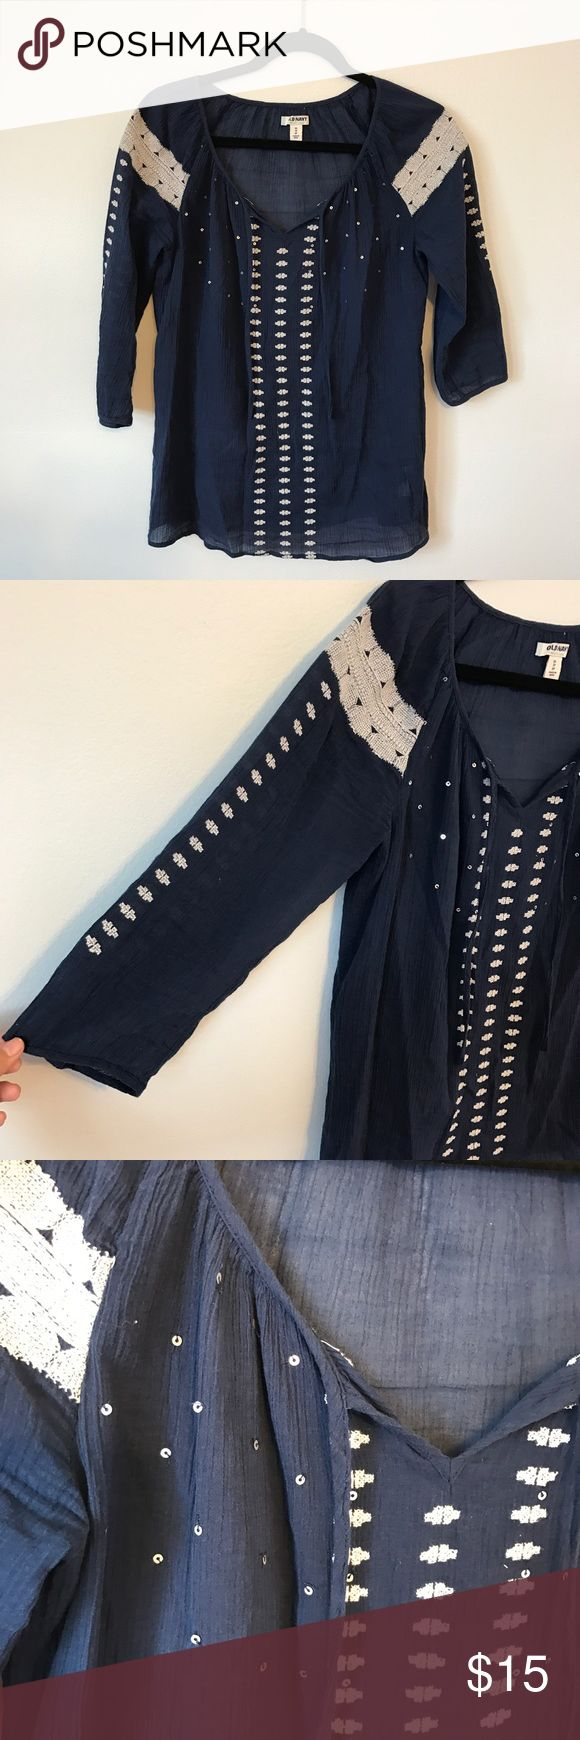 Navy tunic Navy blue tunic with white embroidered details with sequins Old Navy Tops Tunics